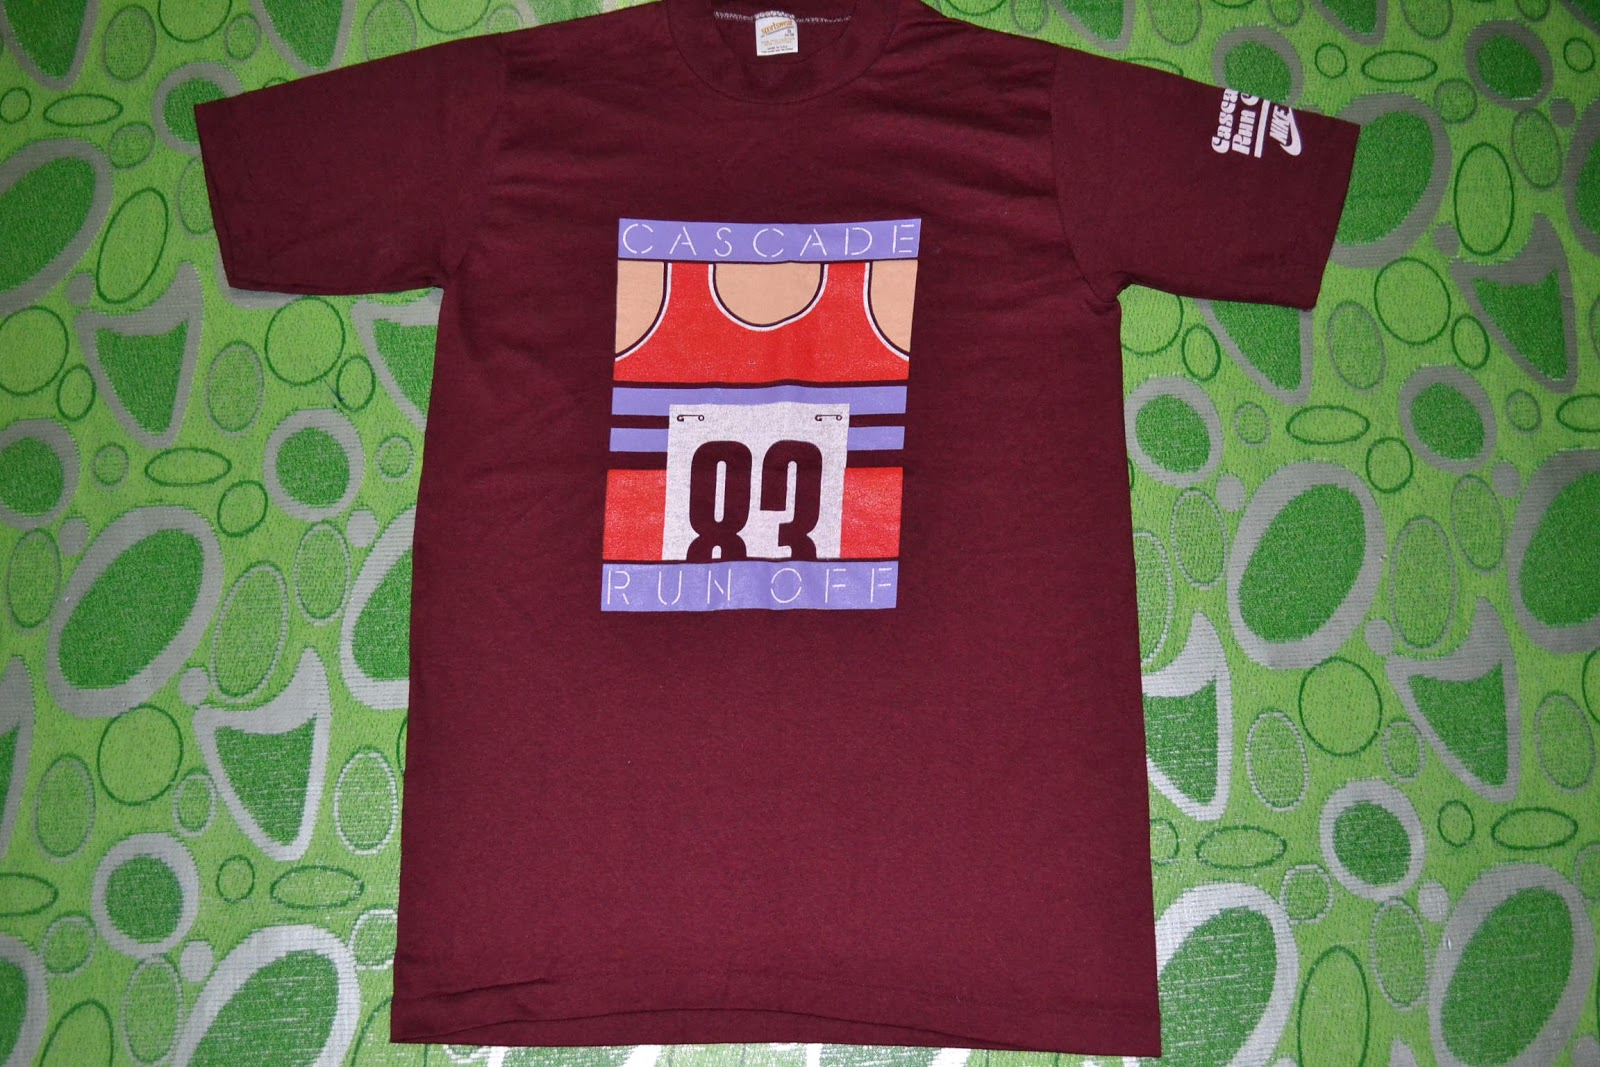 d371d3bdb6710 OldSchoolZone: Vintage 1983 NIKE Cascade Run Off 50/50 t-shirt (SOLD)